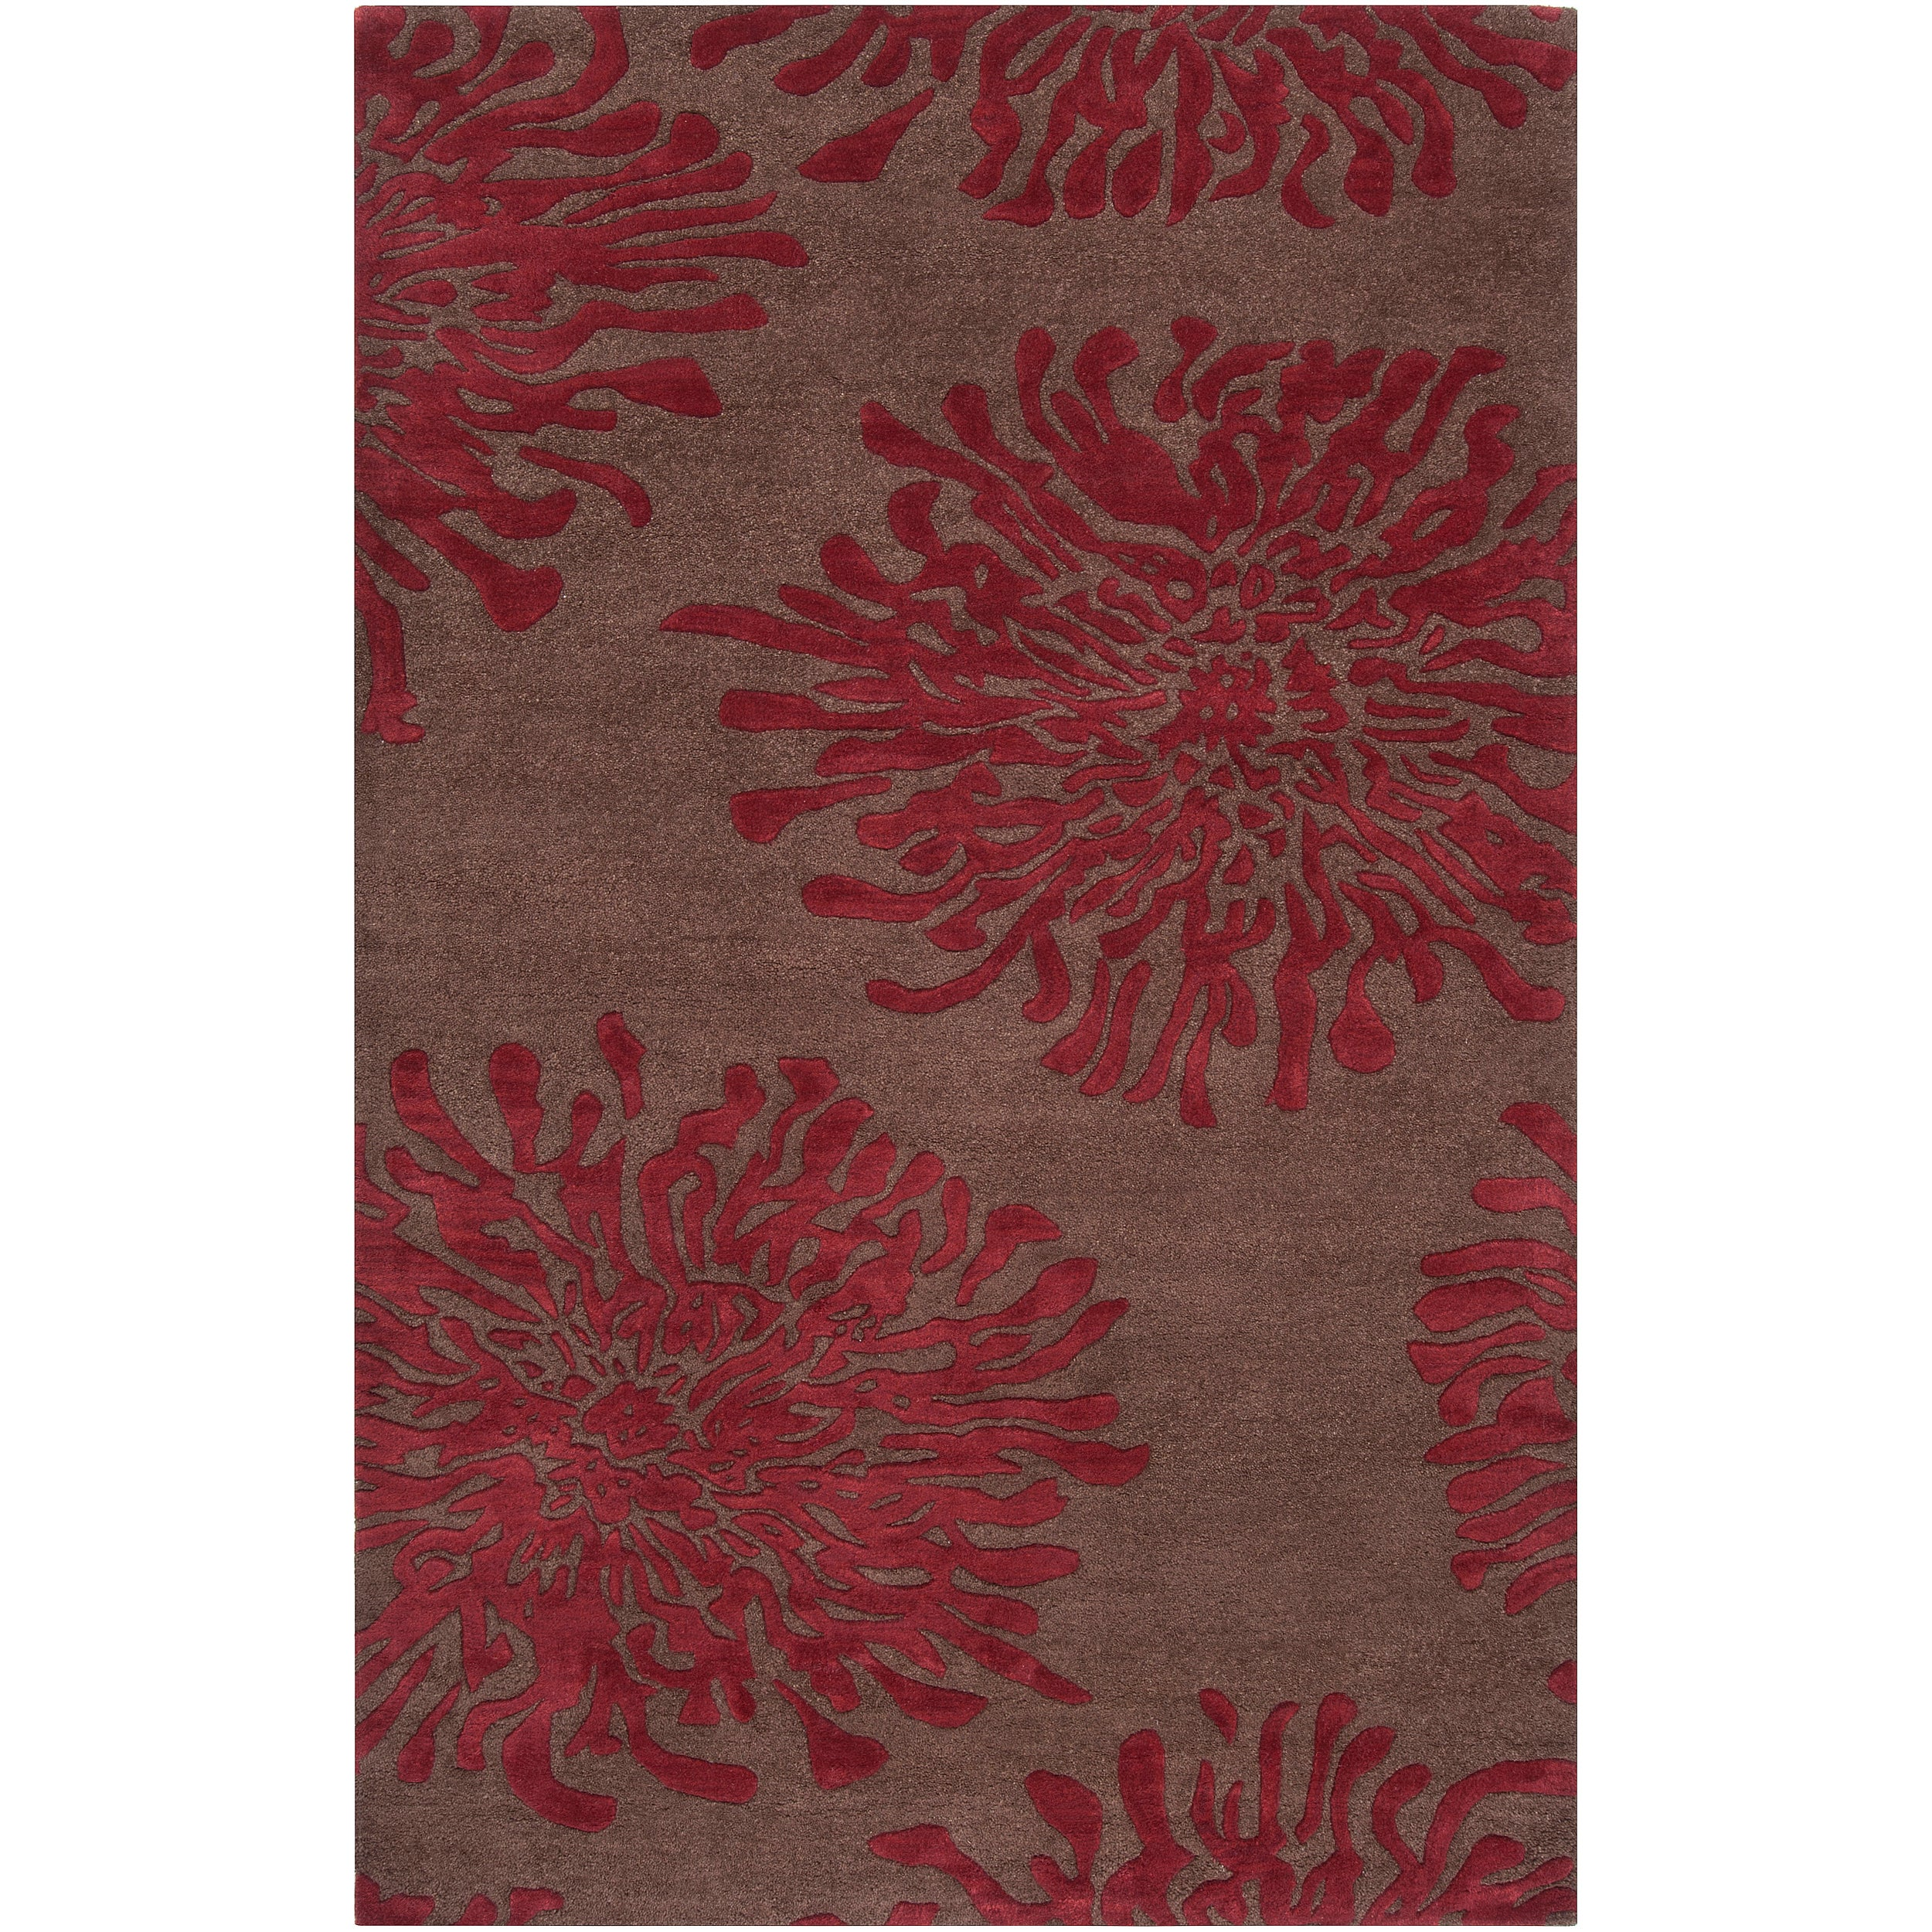 Hand-tufted Contemporary Brown/Burgundy Floral Shaki New Zealand Wool Abstract Rug (5' x 8')